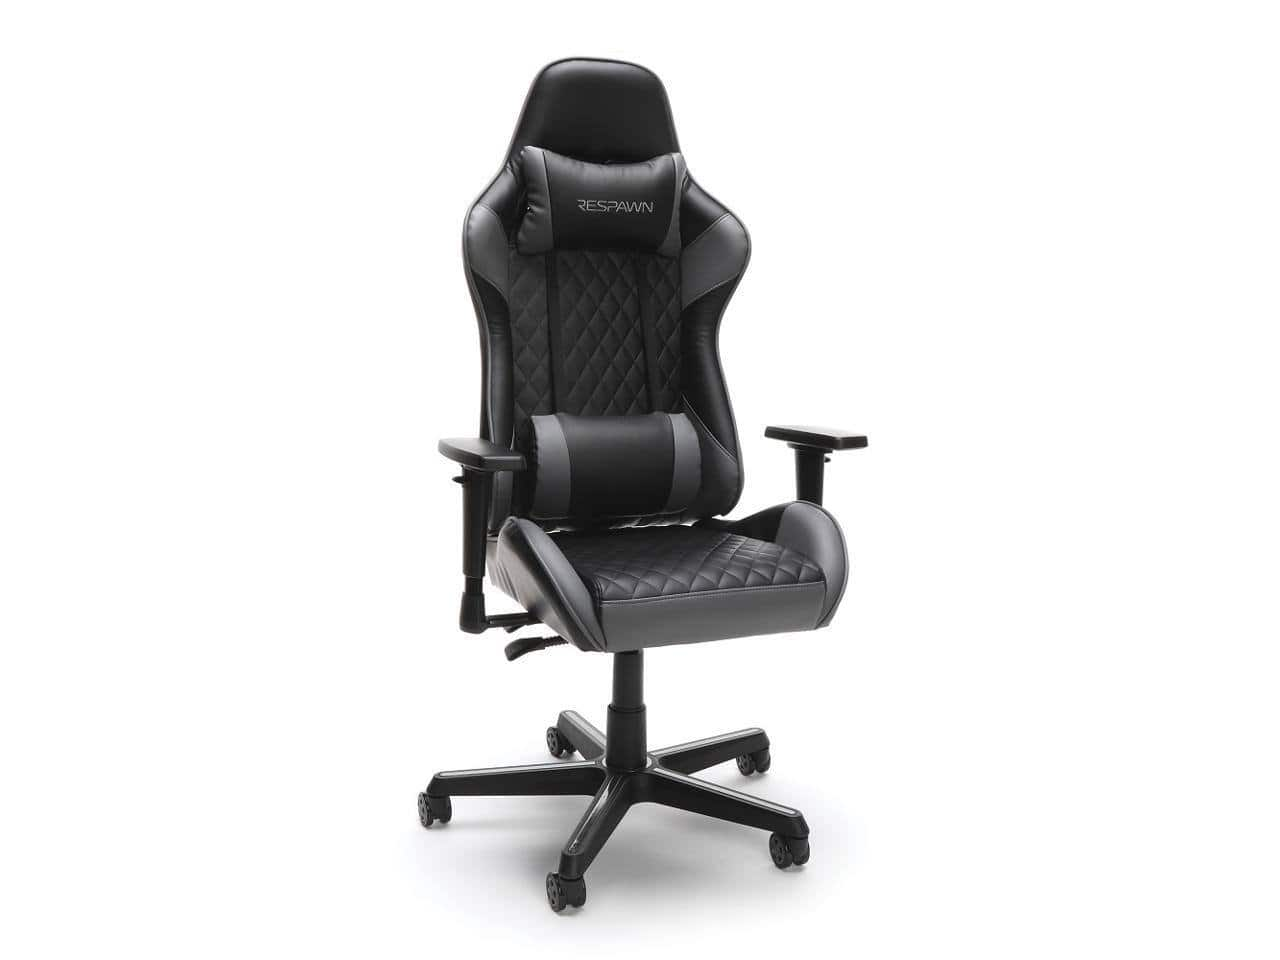 RESPAWN Racing Style Gaming Chair for $162.89 & More + FS